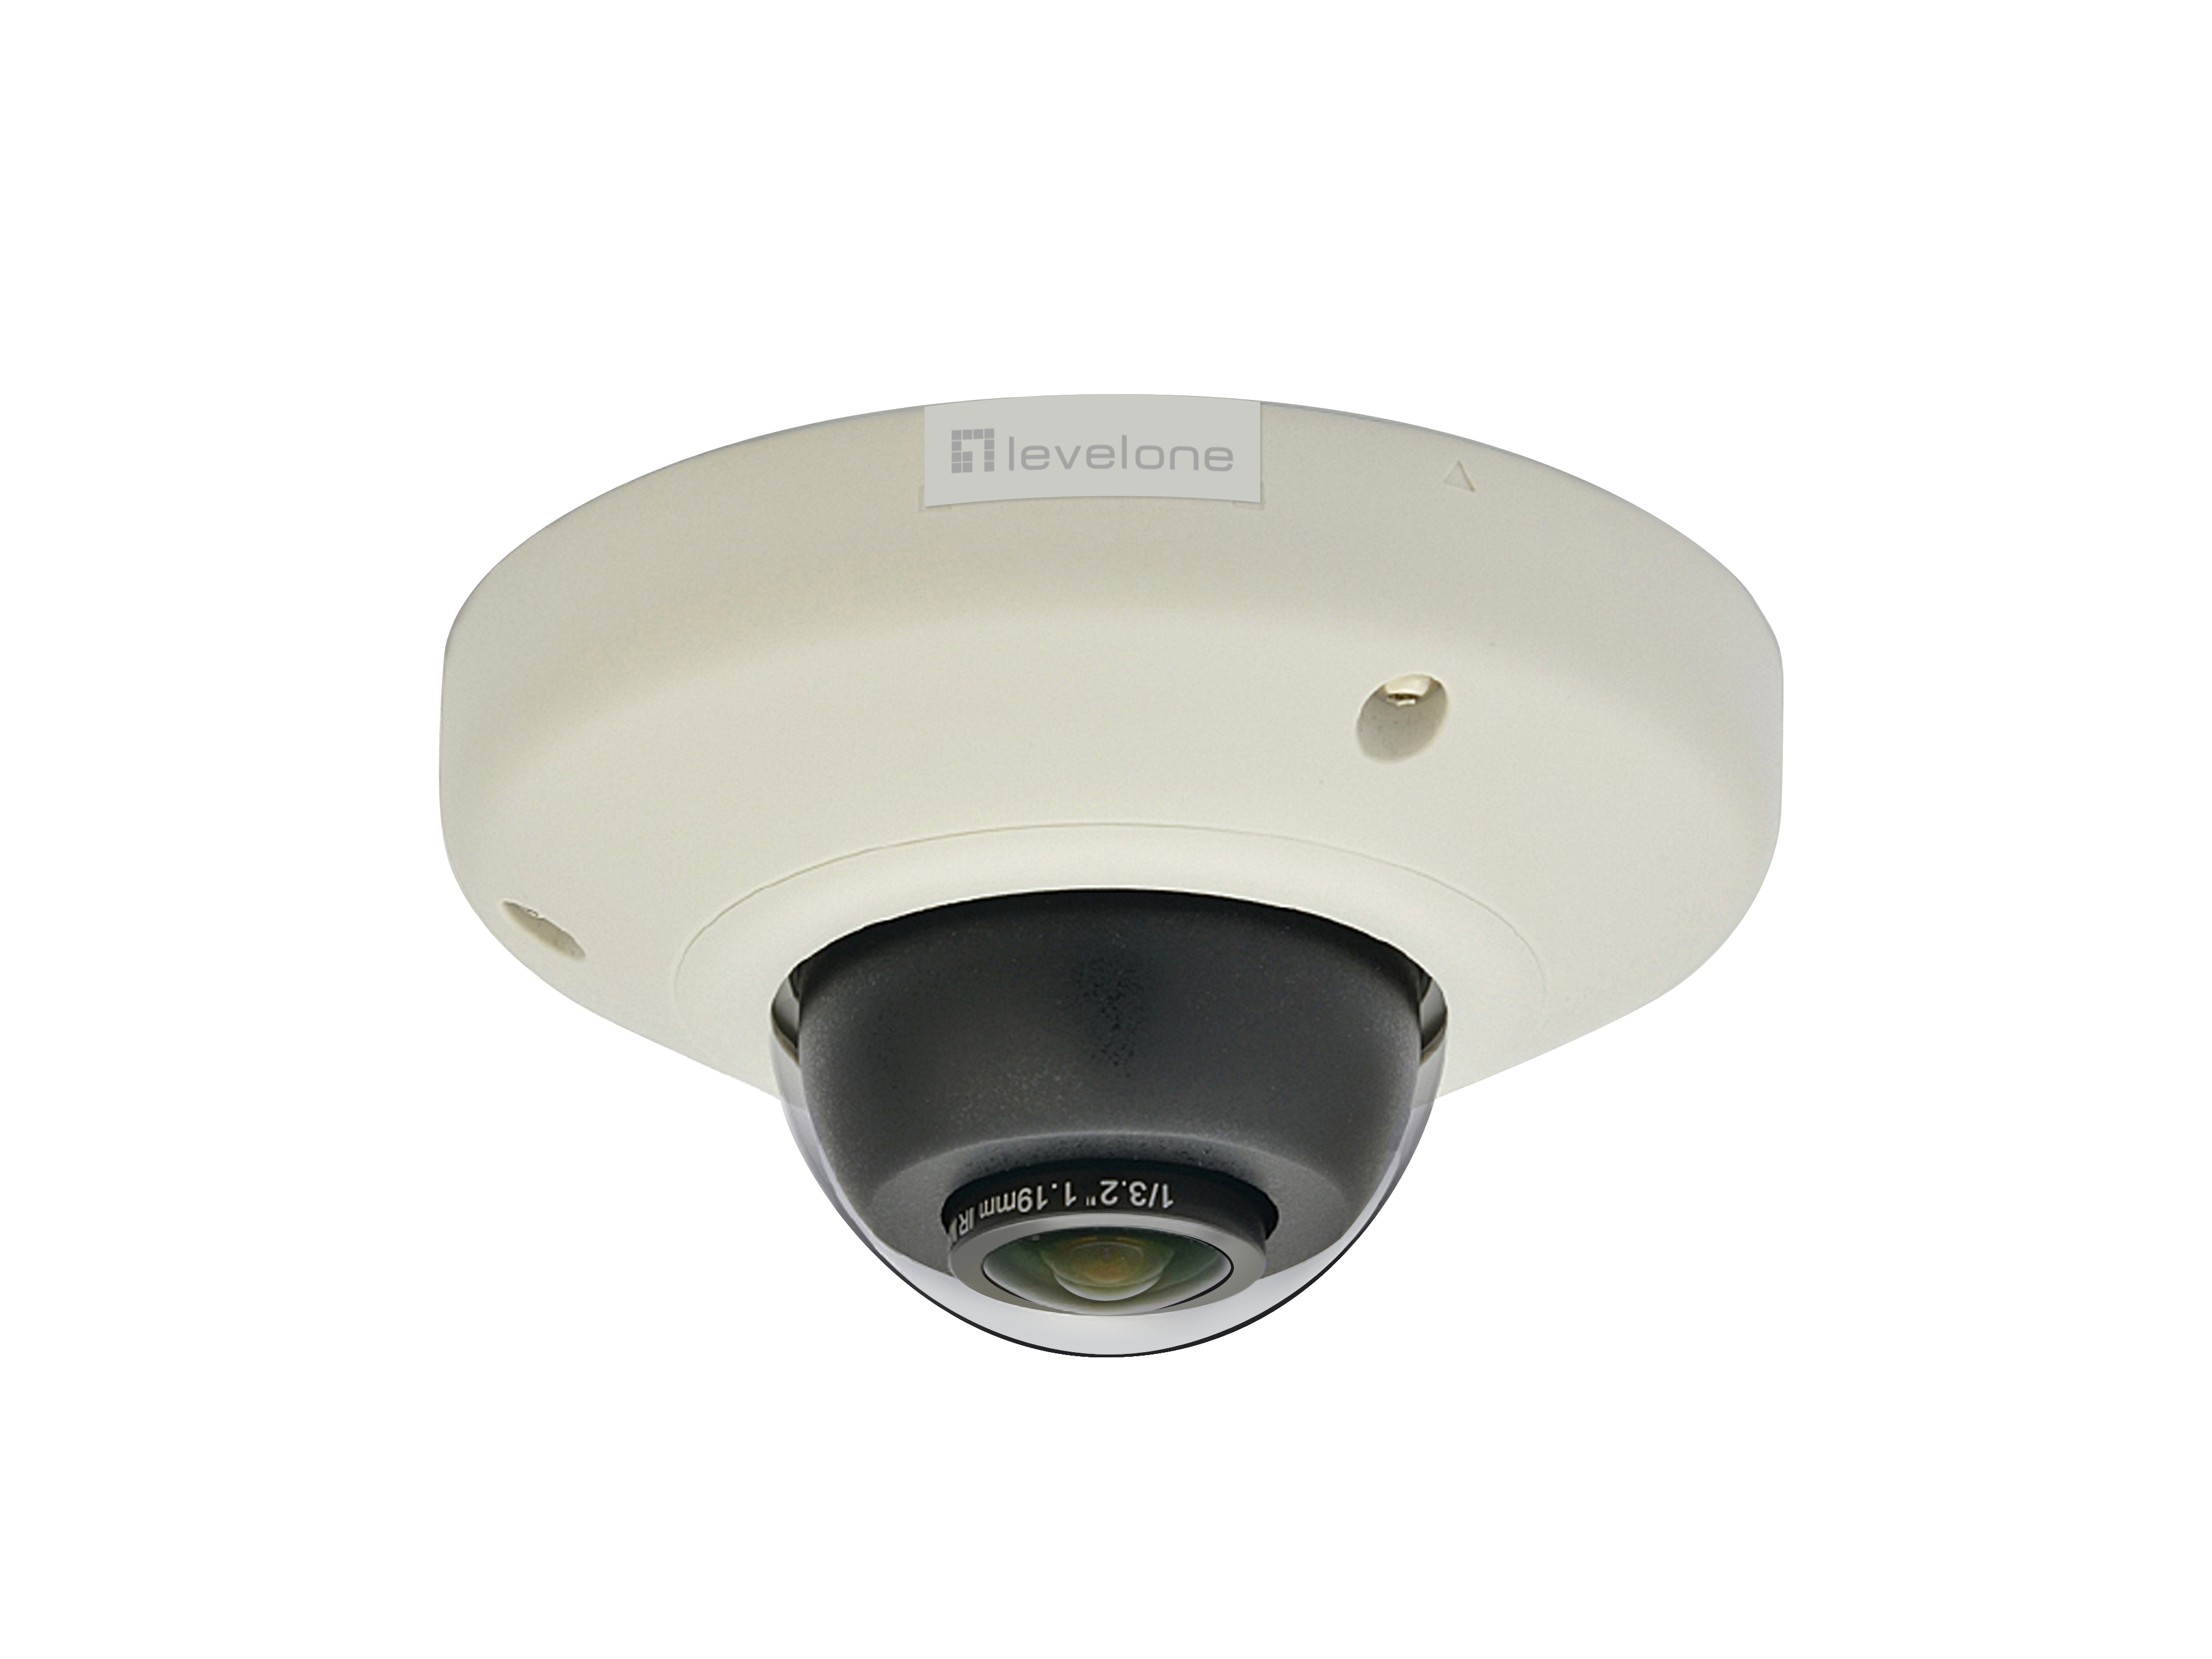 LevelOne Panoramic Dome Network Camera - 5-Megapixel - PoE 802.3af - WDR